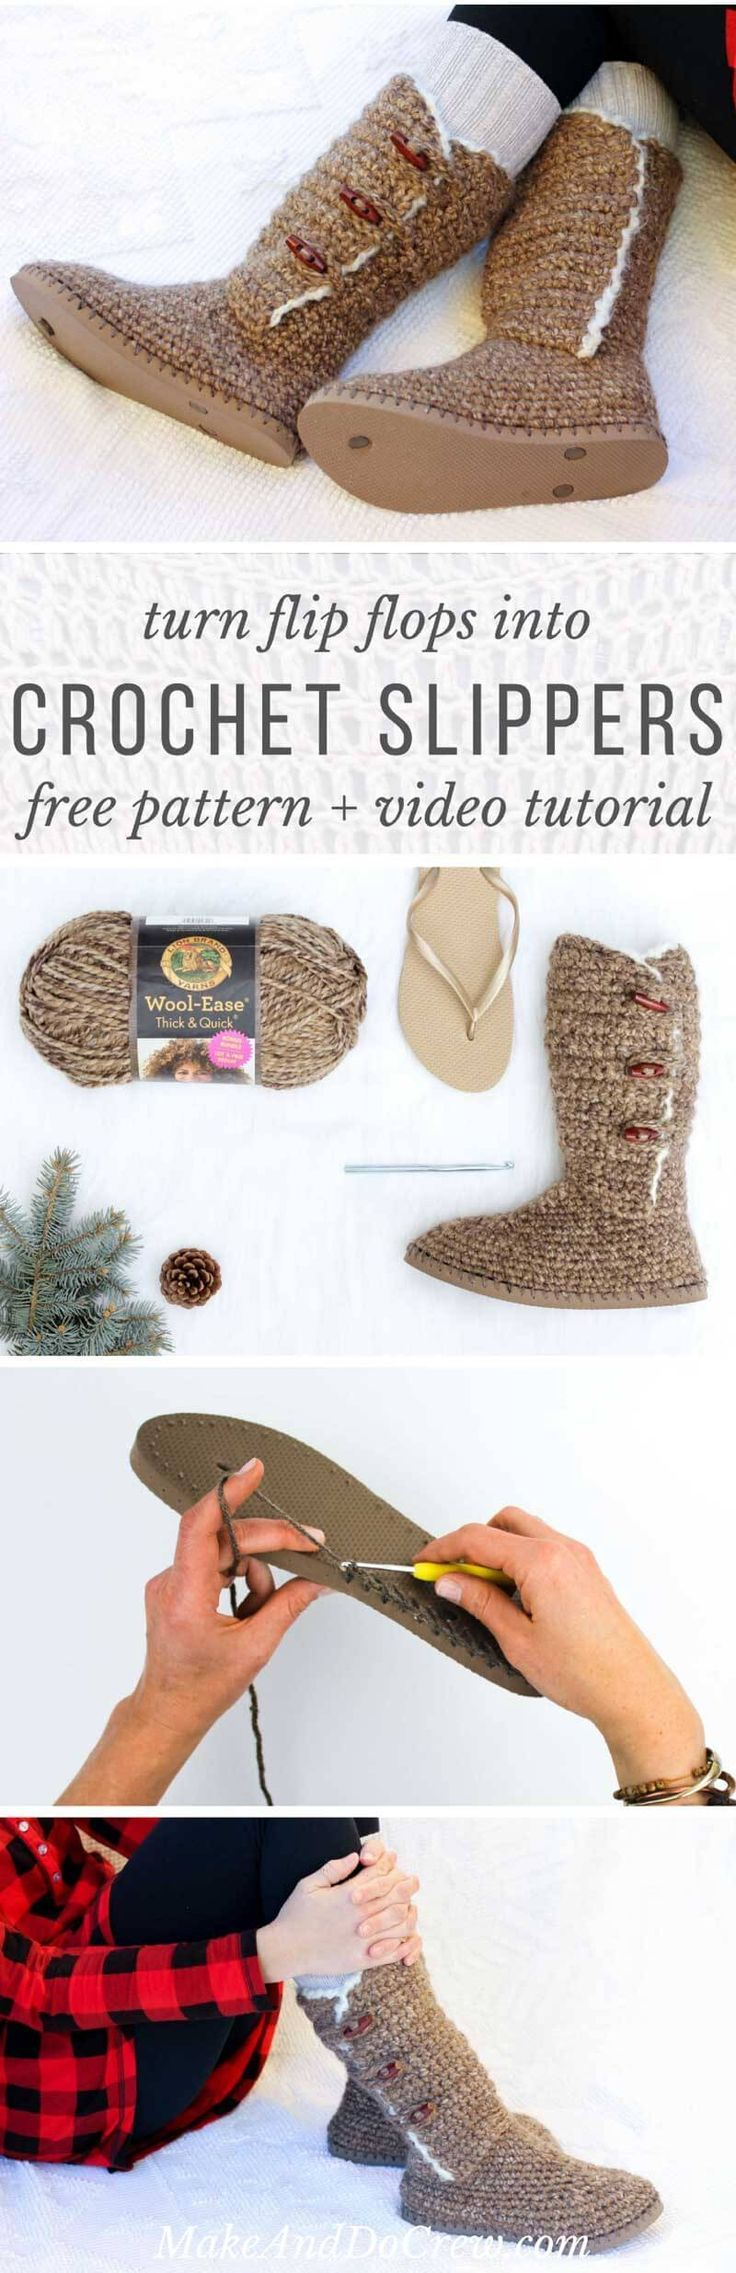 UGG-Style Free Crochet Boots Pattern Using Flip Flops | Pinterest ...